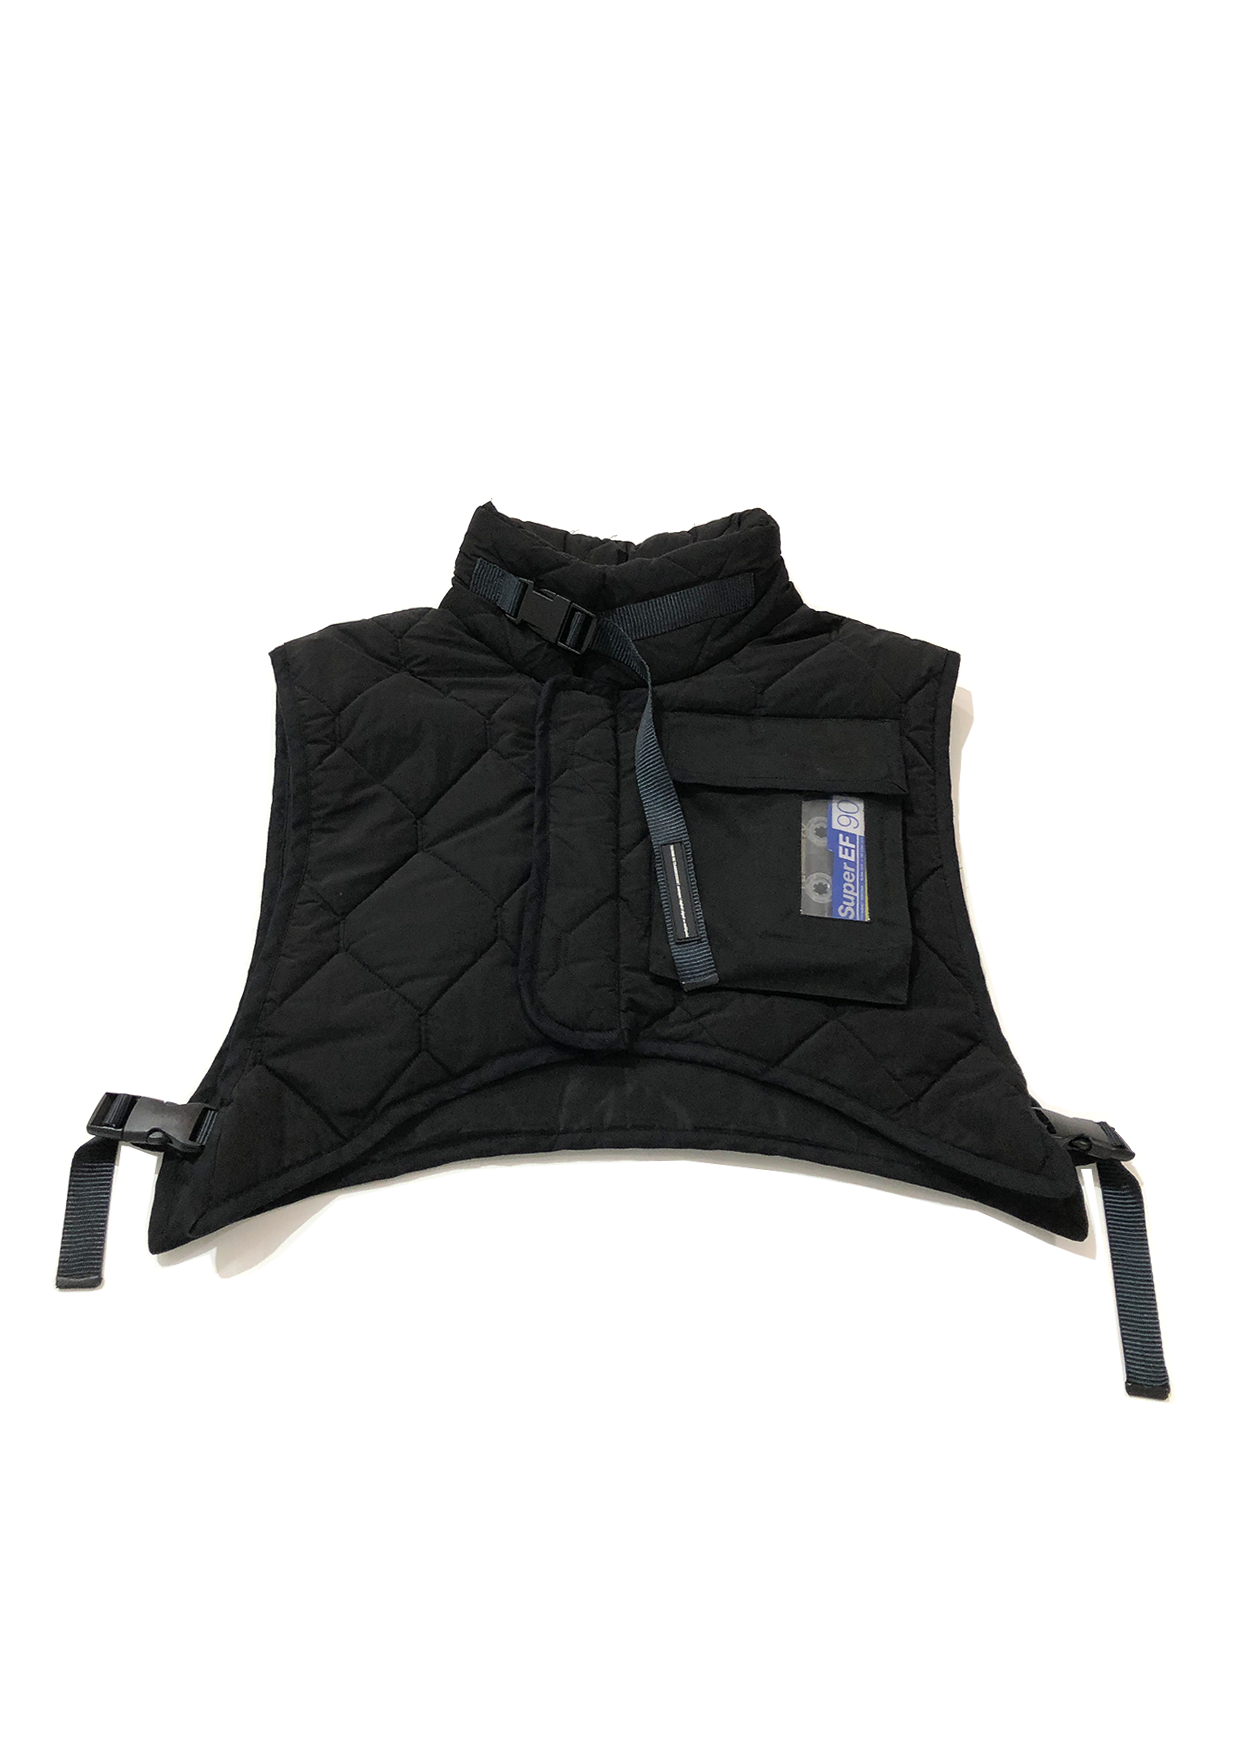 FREQUENCY GILET - BLACK